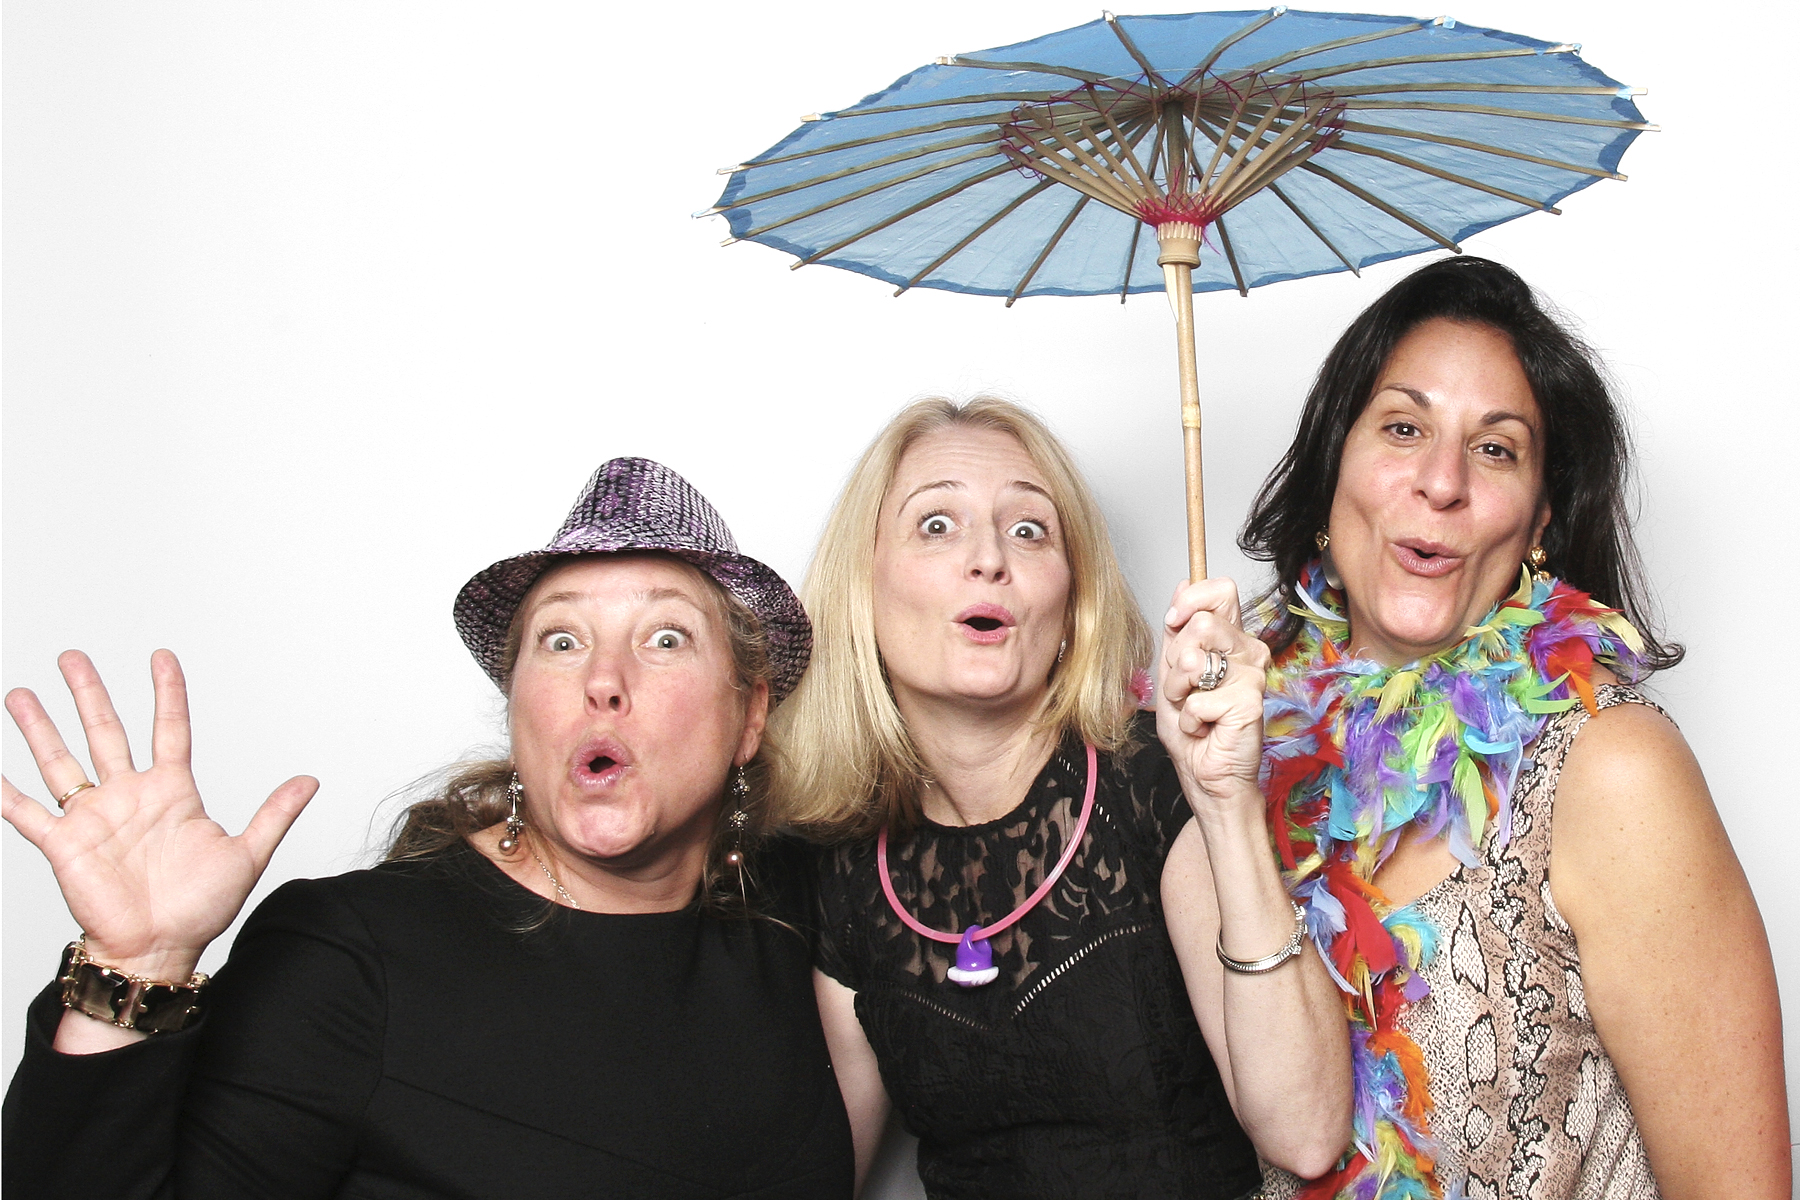 Mitzvah Parents with umbrella photo booth